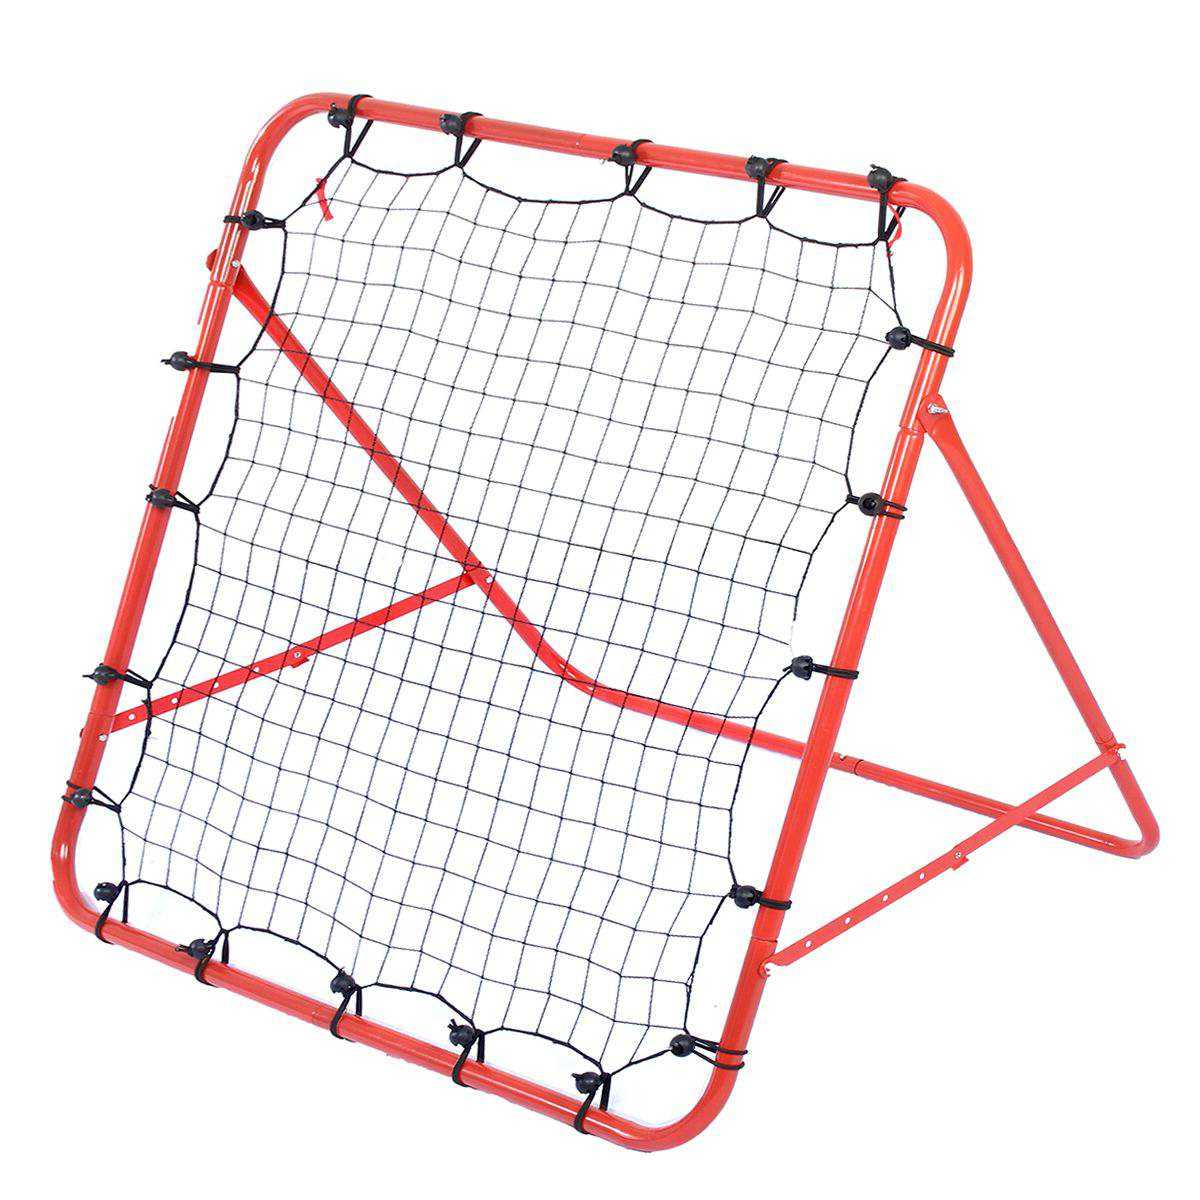 Factory wholesale portable soccer net outdoor pop up tiny kids soccer net rebounder